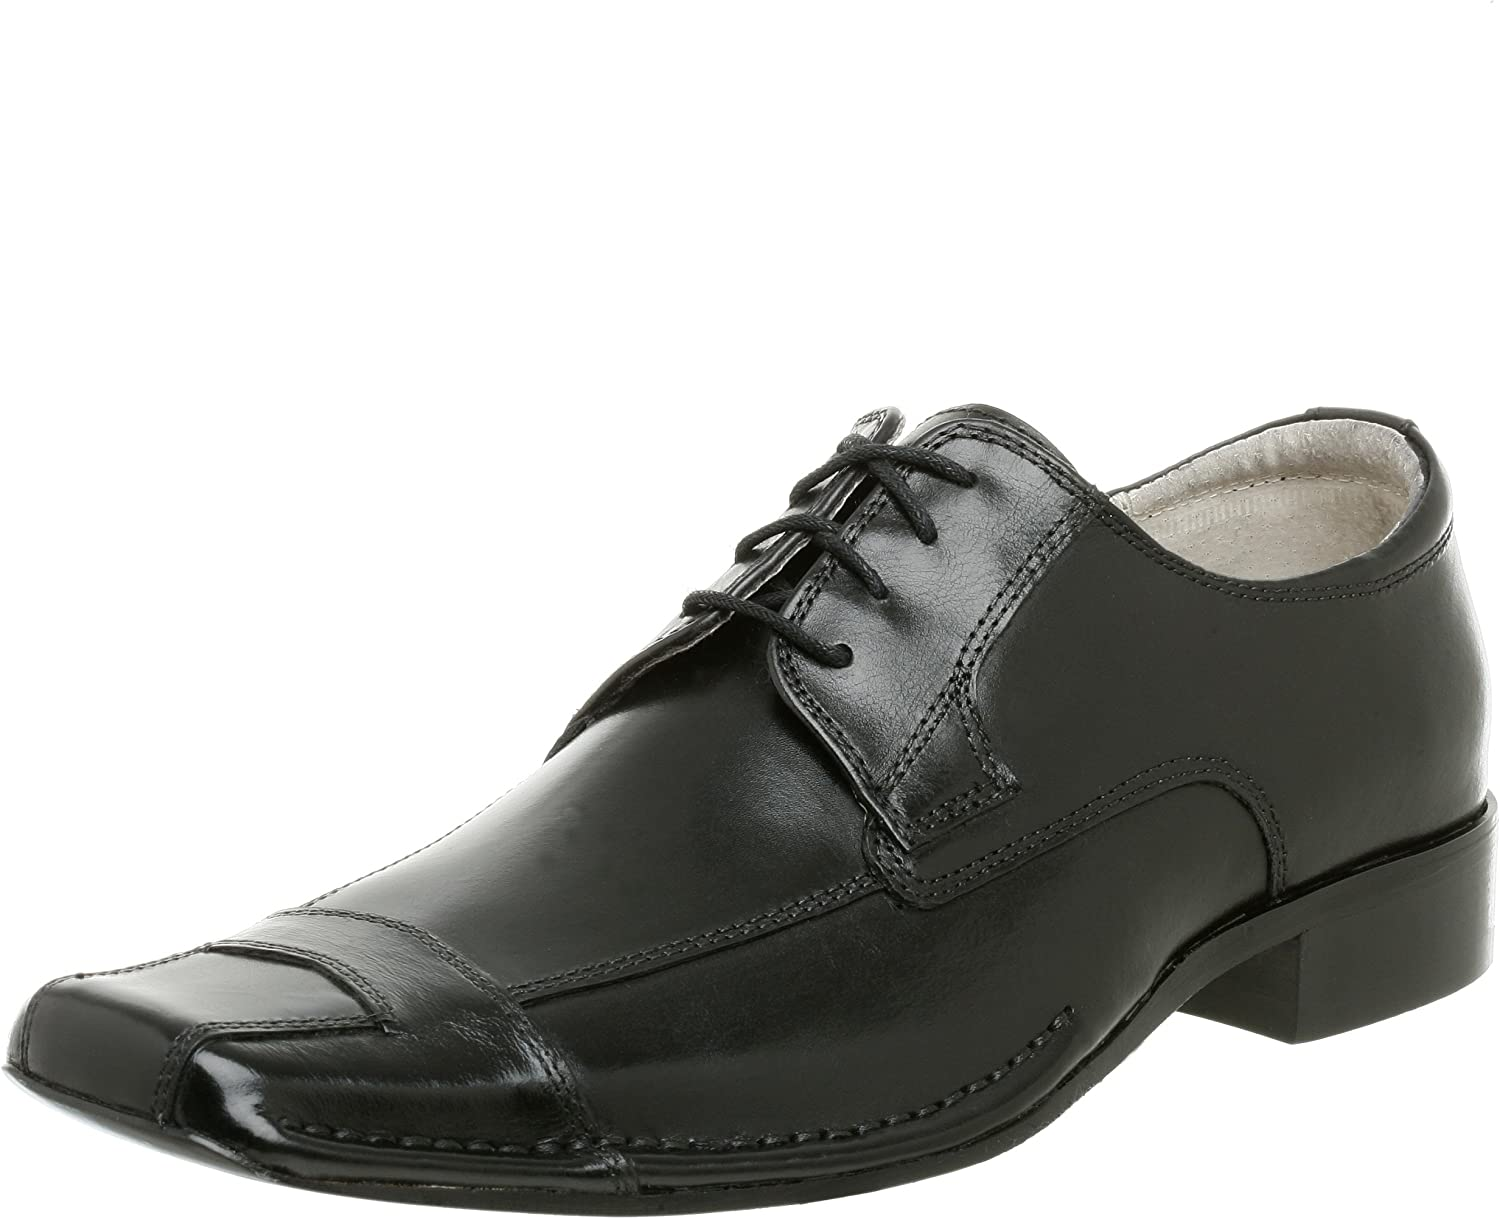 Stacy Adams Men's New arrival Savoy OFFicial store Oxford